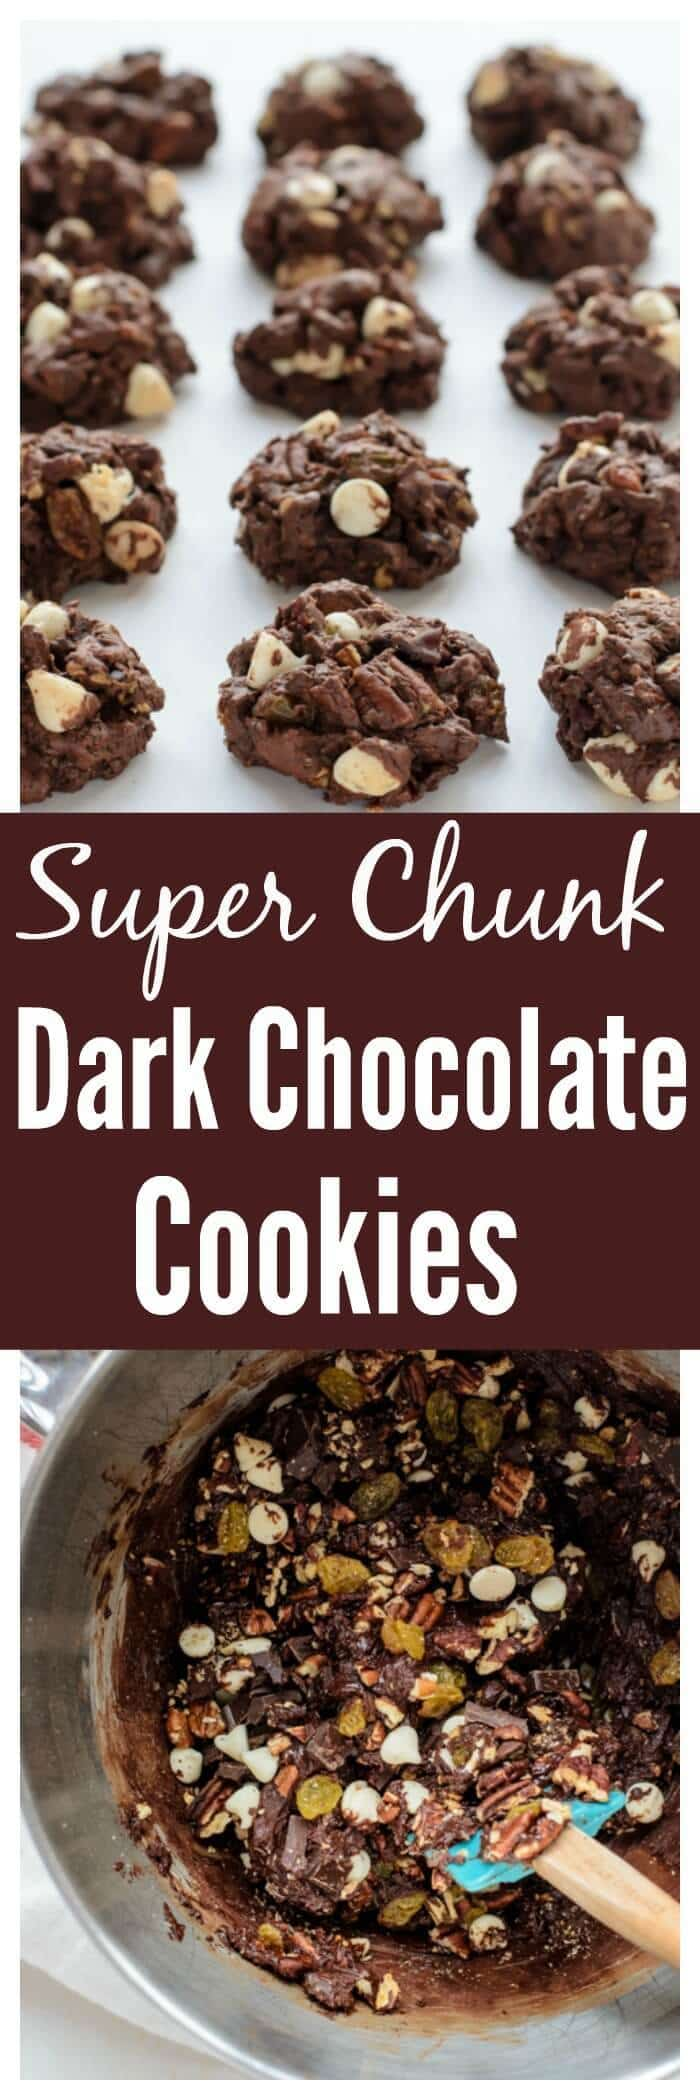 Super Chunk Dark Chocolate Cookies